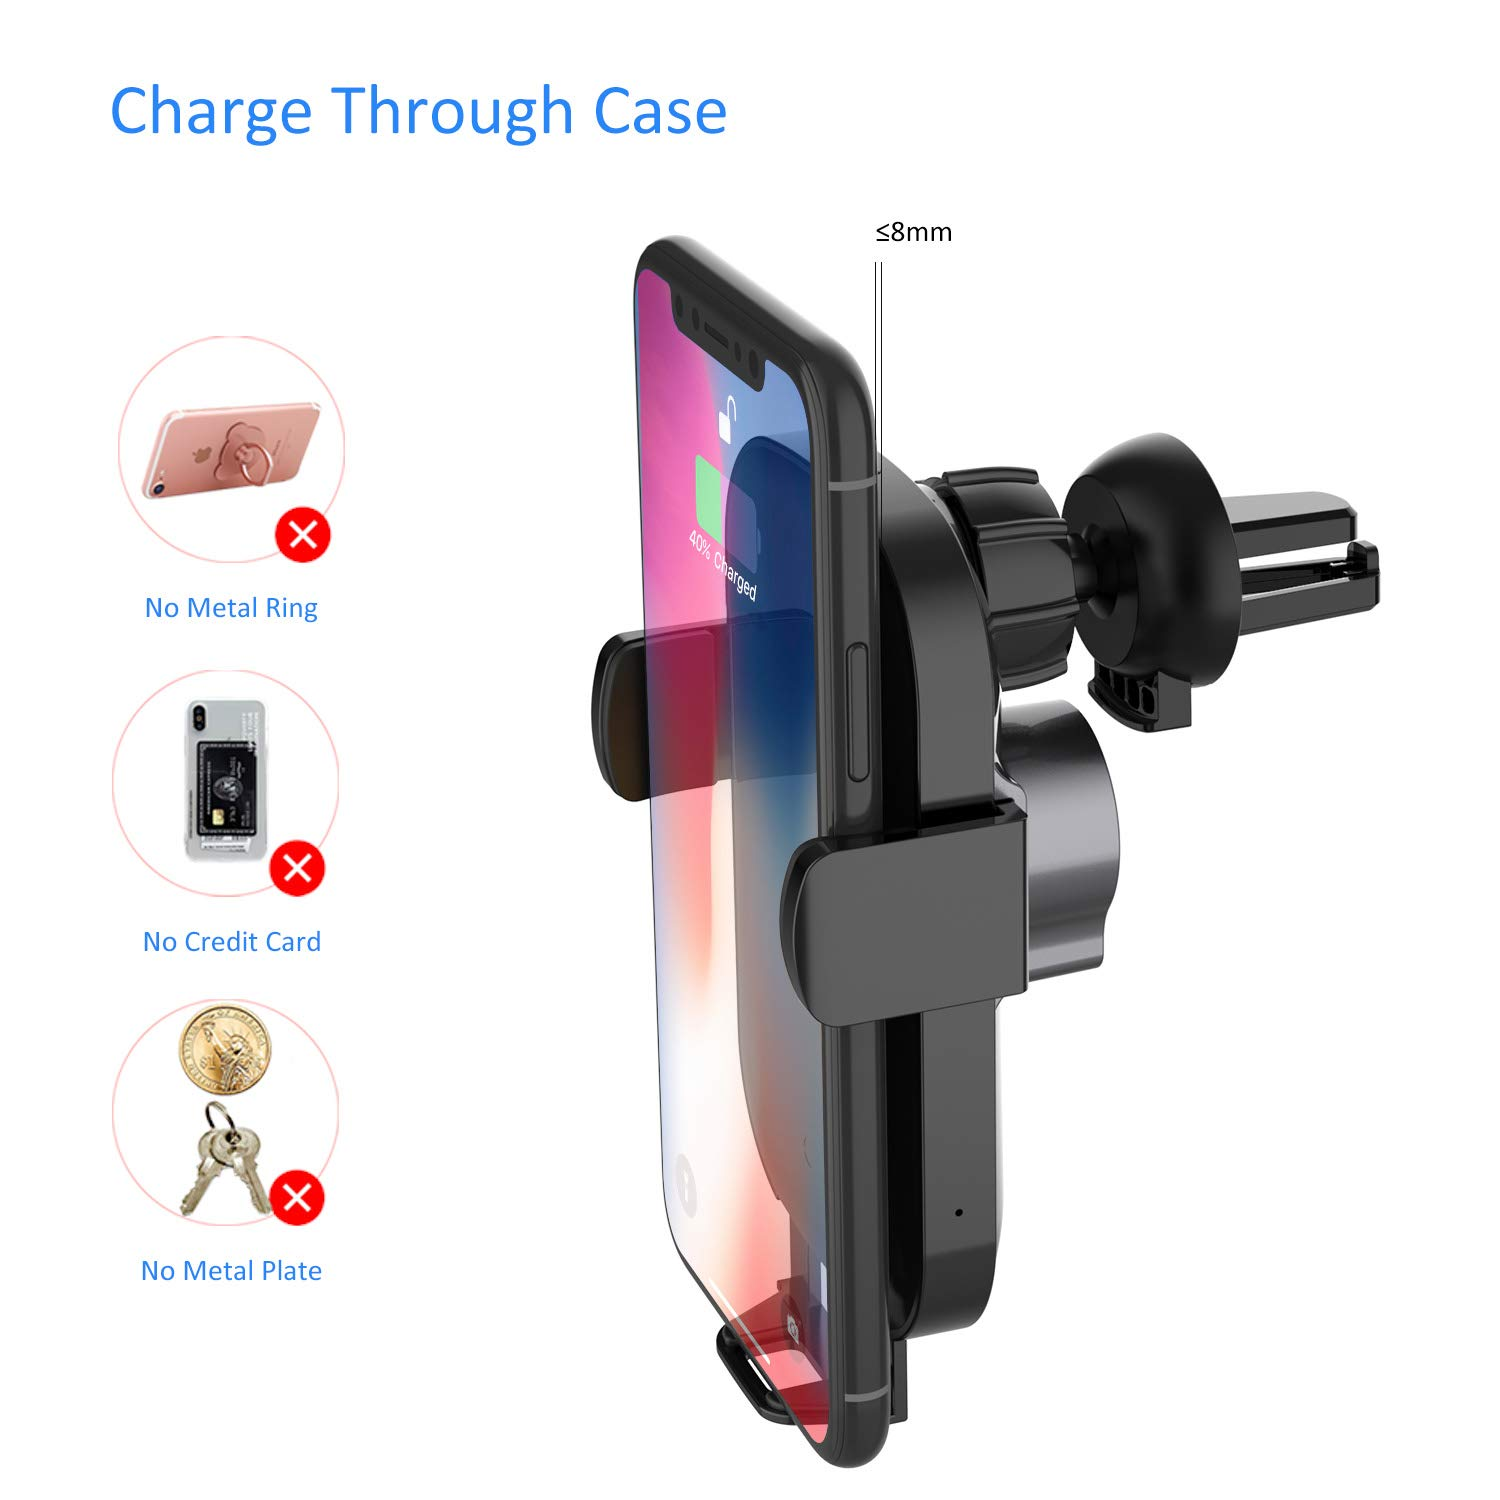 Samsung S20|S20+|S20U|S10|S10+|S9|Note10 Askai Wireless Car Charger Mount,10W Qi Fast Charging Auto-Clamping Mount,Air Vent Dashboard Phone Holder Compatible with iPhone 11|11 Pro|Max|Xs|Xs Max|X|XR